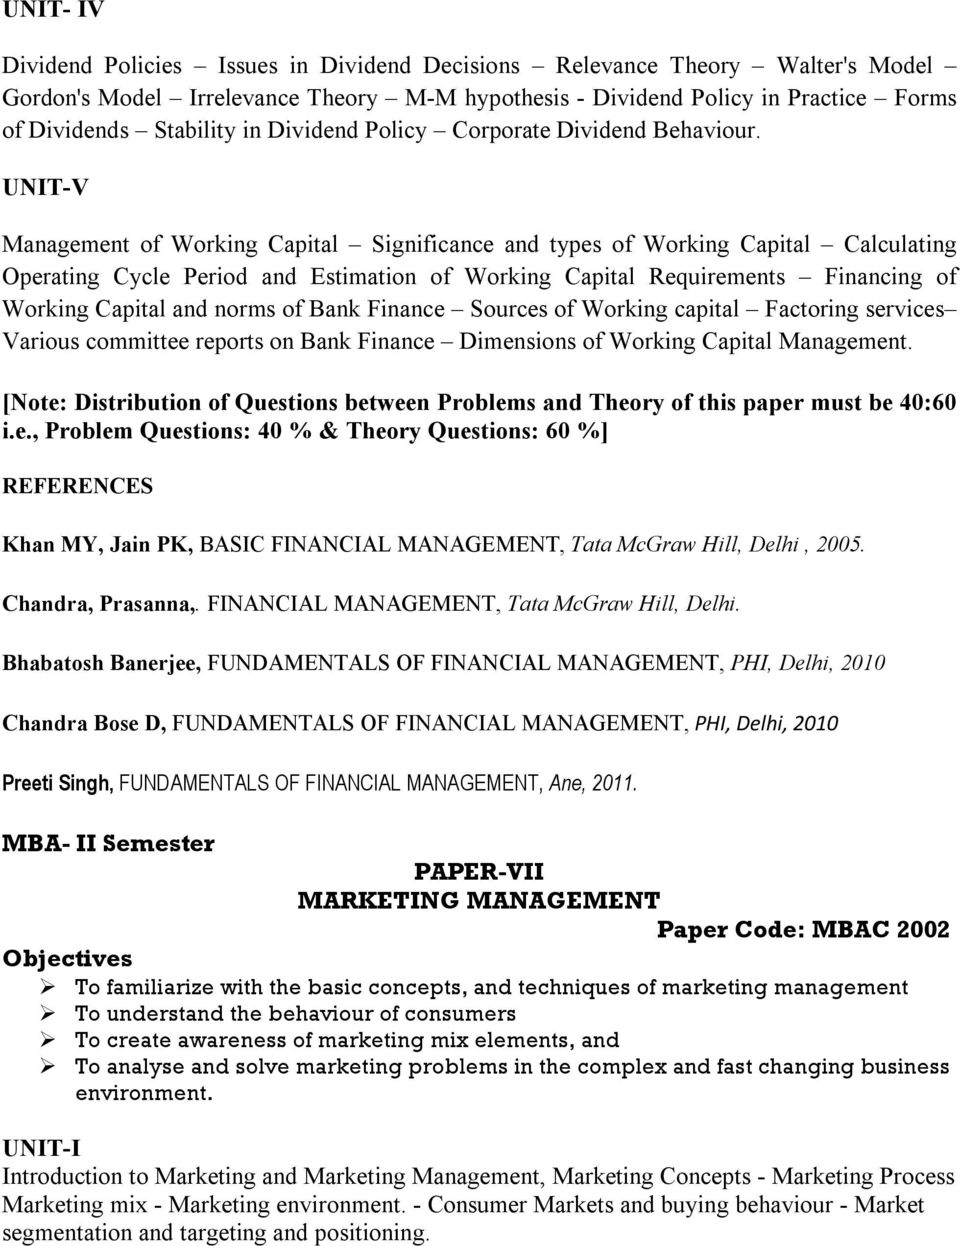 UNIT-V Management of Working Capital Significance and types of Working Capital Calculating Operating Cycle Period and Estimation of Working Capital Requirements Financing of Working Capital and norms